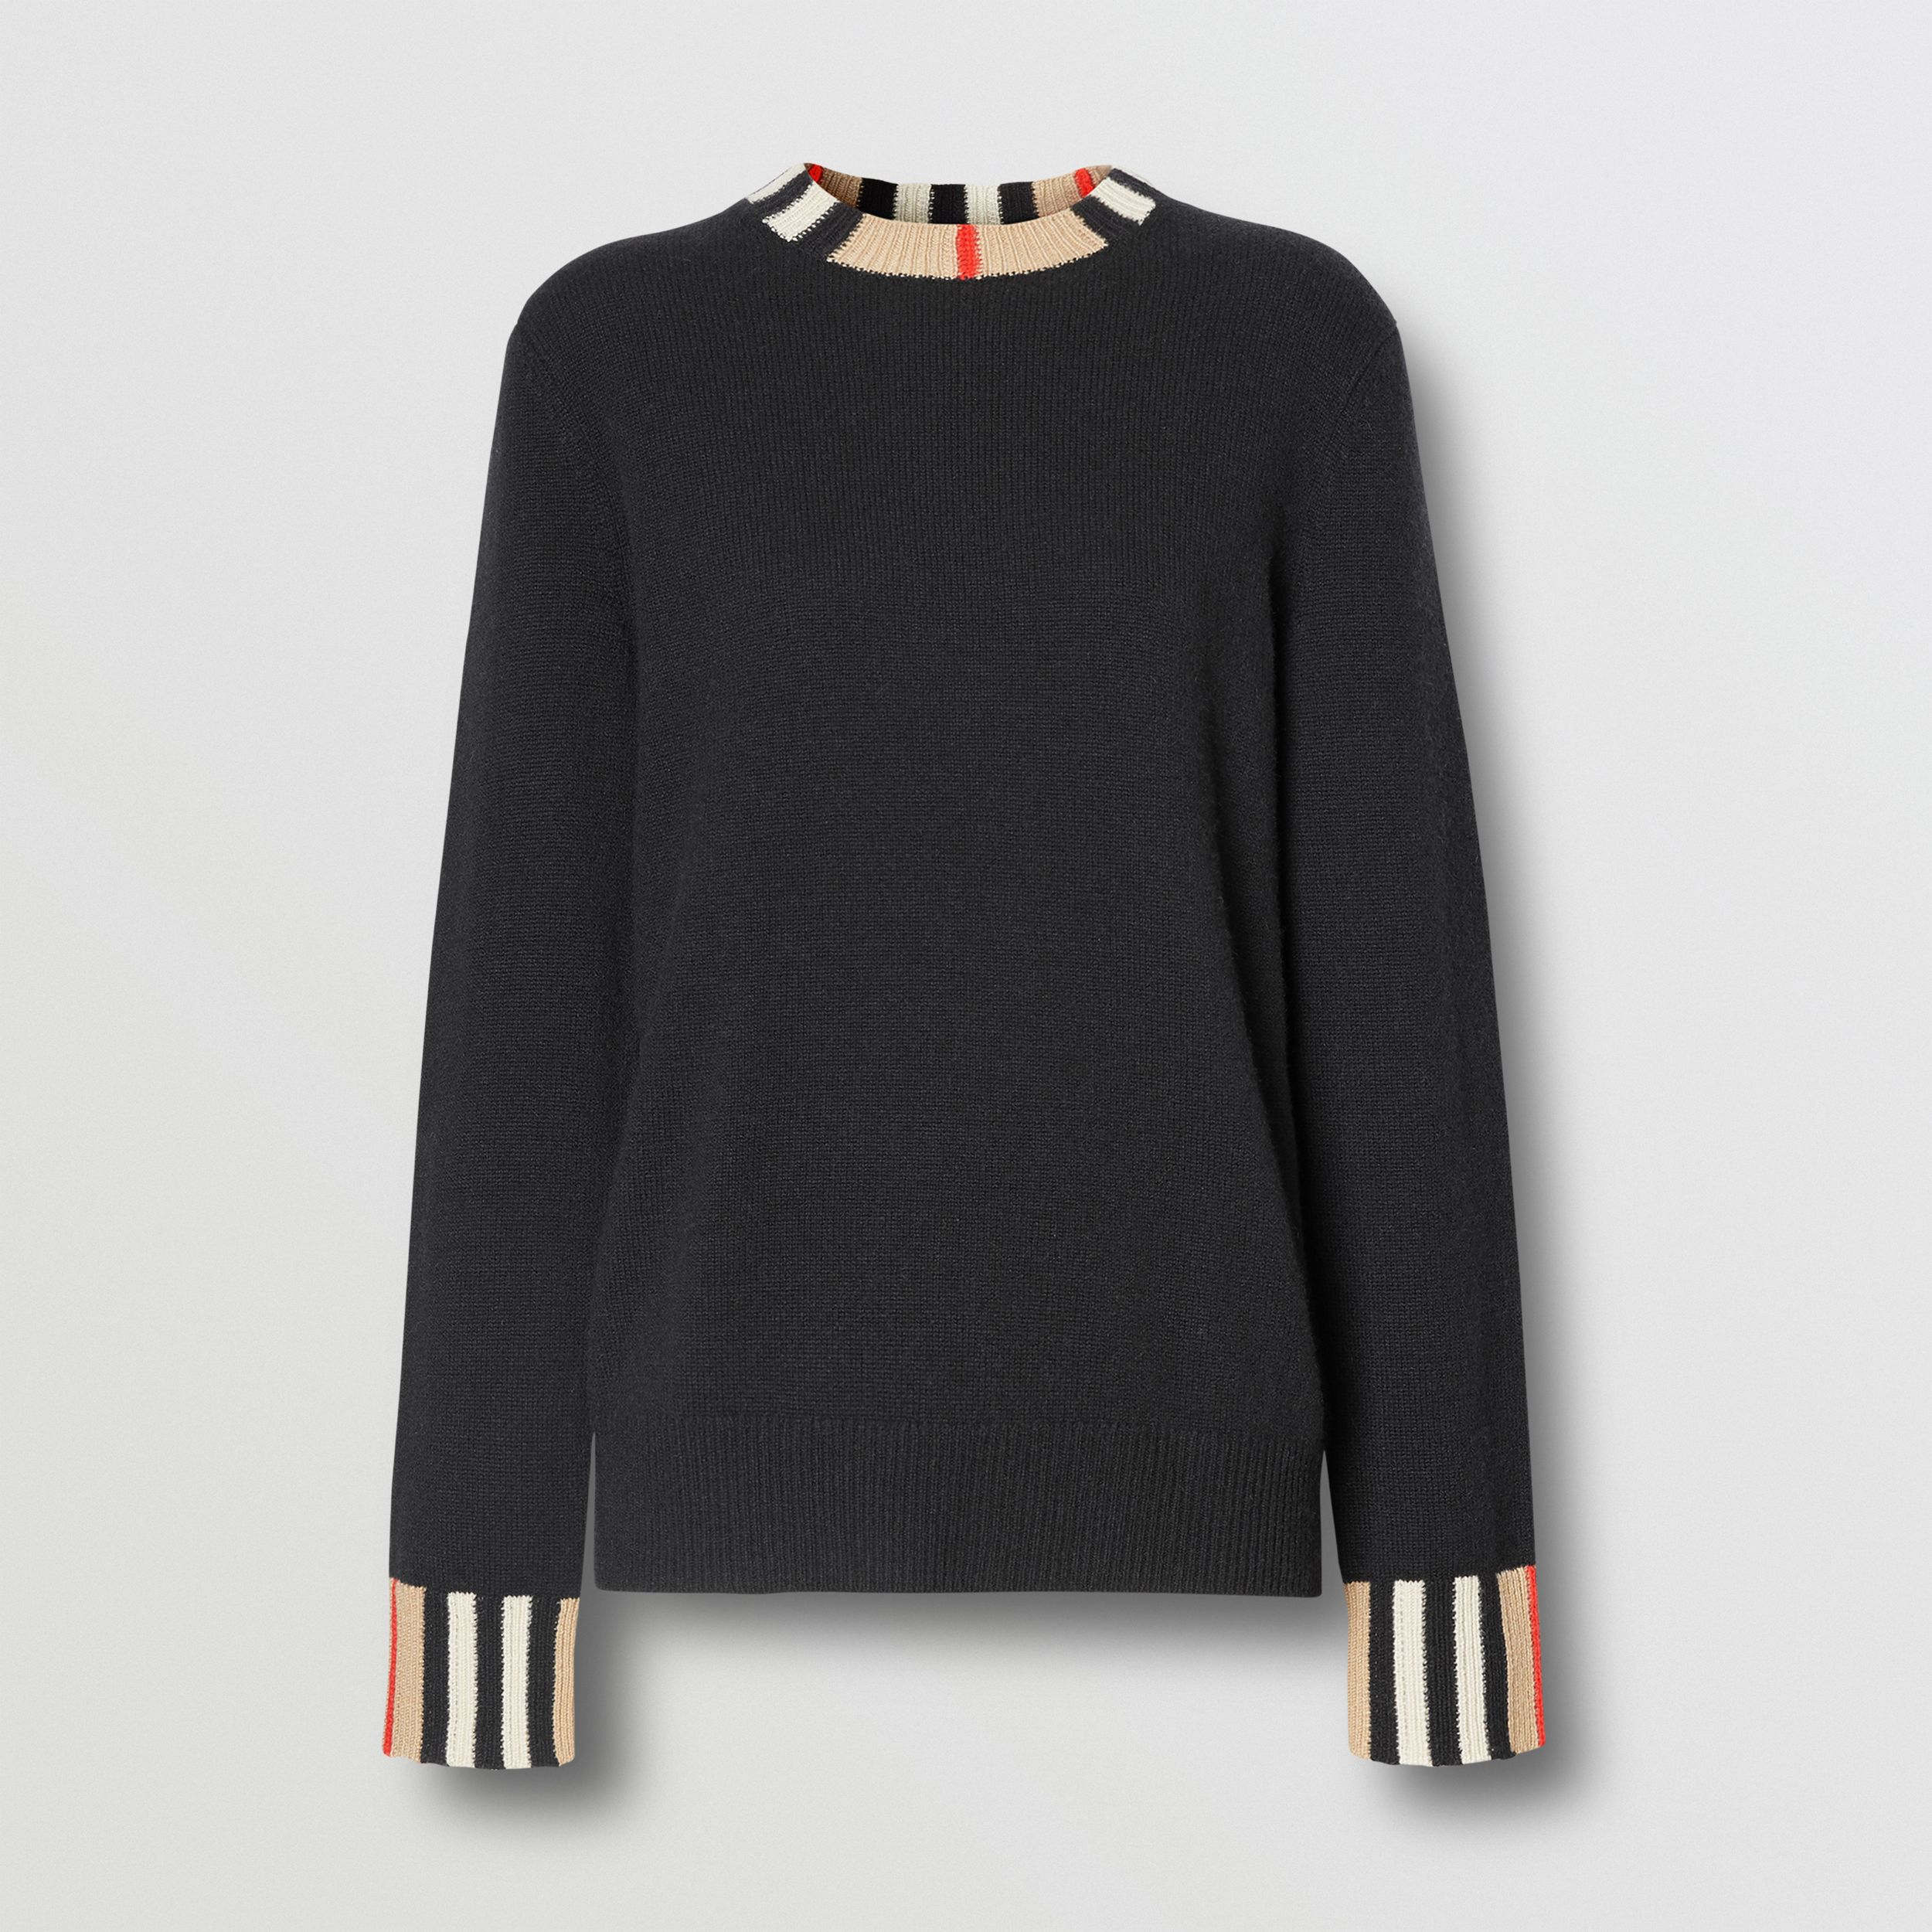 Icon Stripe Trim Cashmere Sweater in Black - Women | Burberry Hong Kong S.A.R. - 4